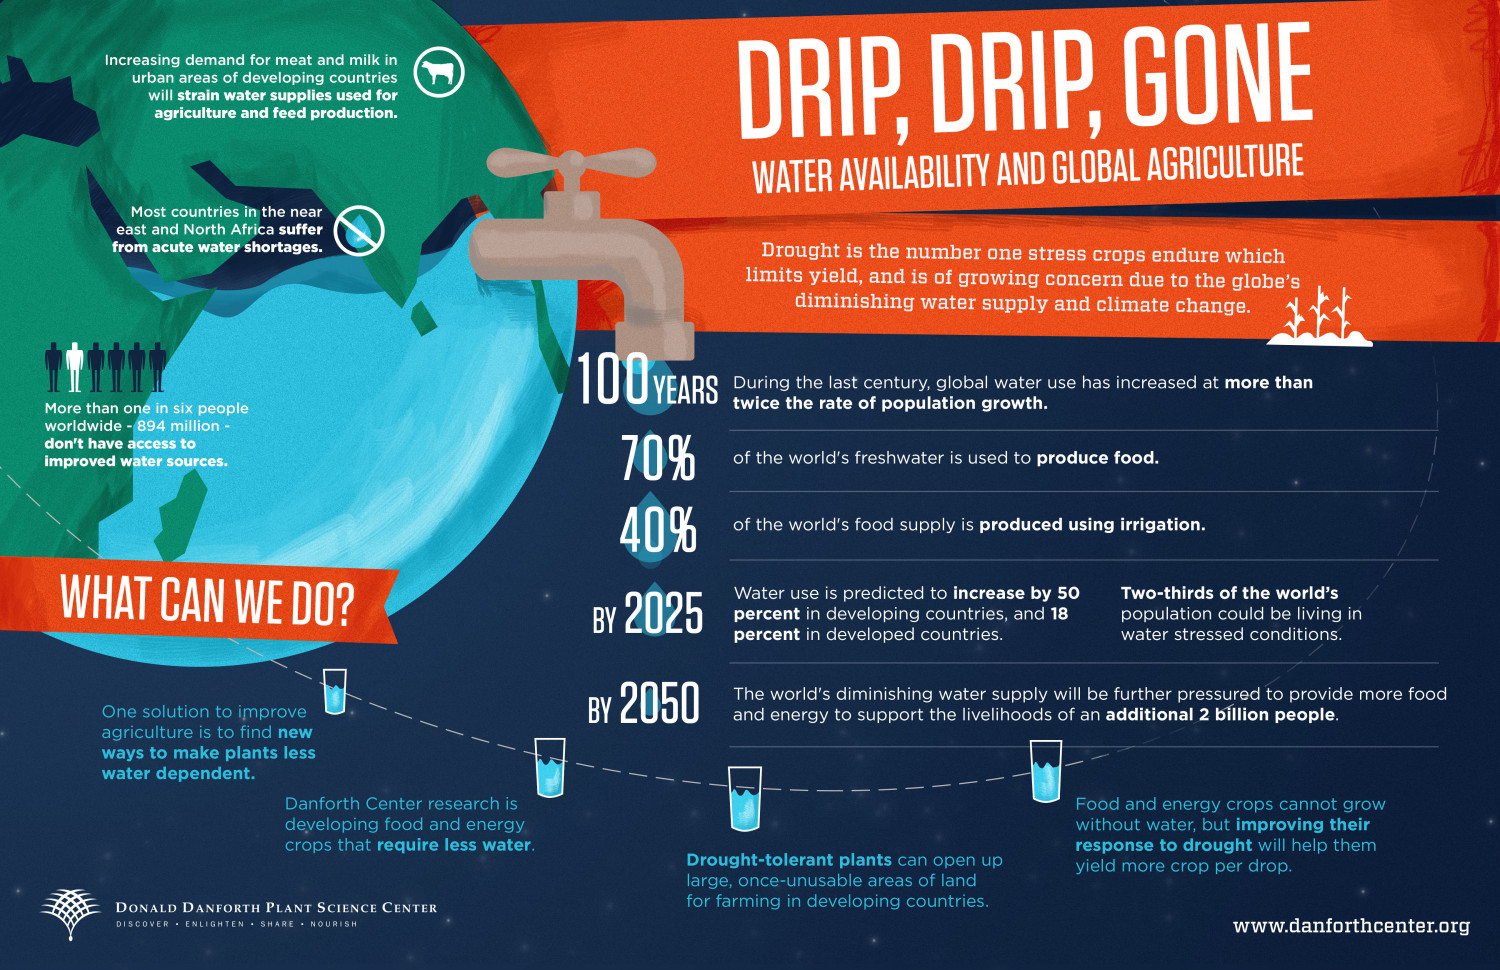 Water Availability and its Impact on Global Agriculture Infographic